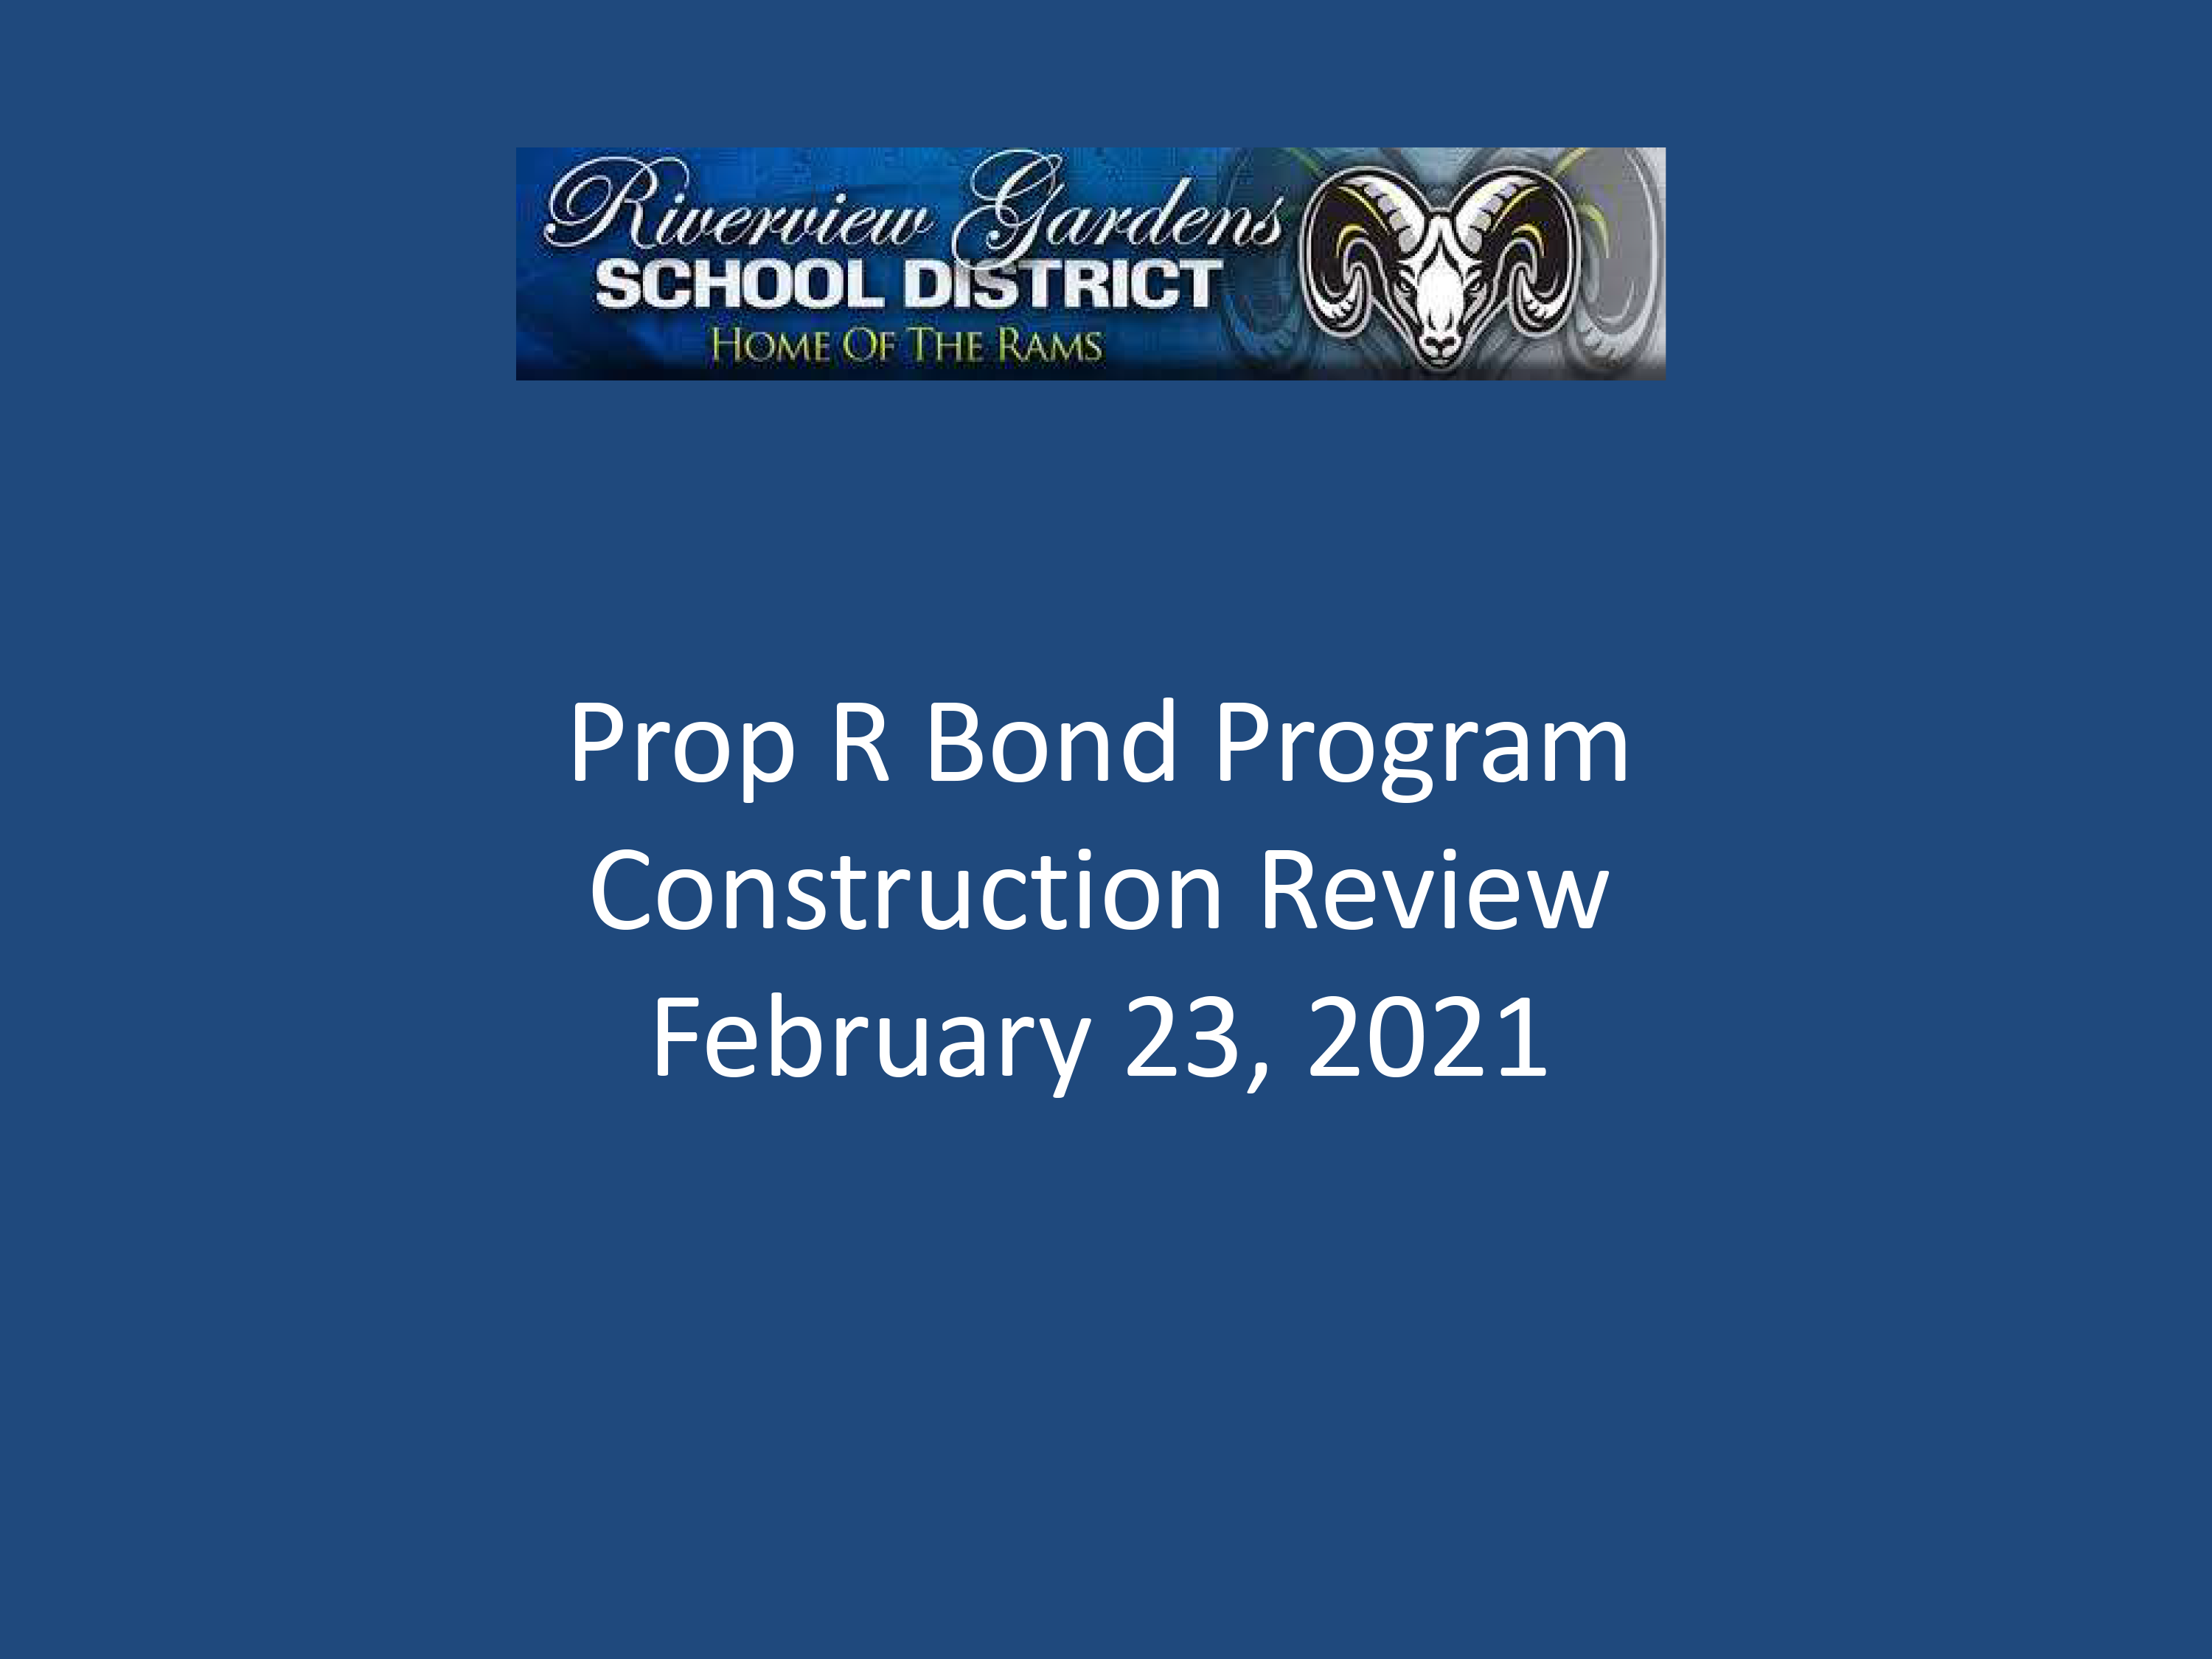 Prop R Projects Update 2-23-21